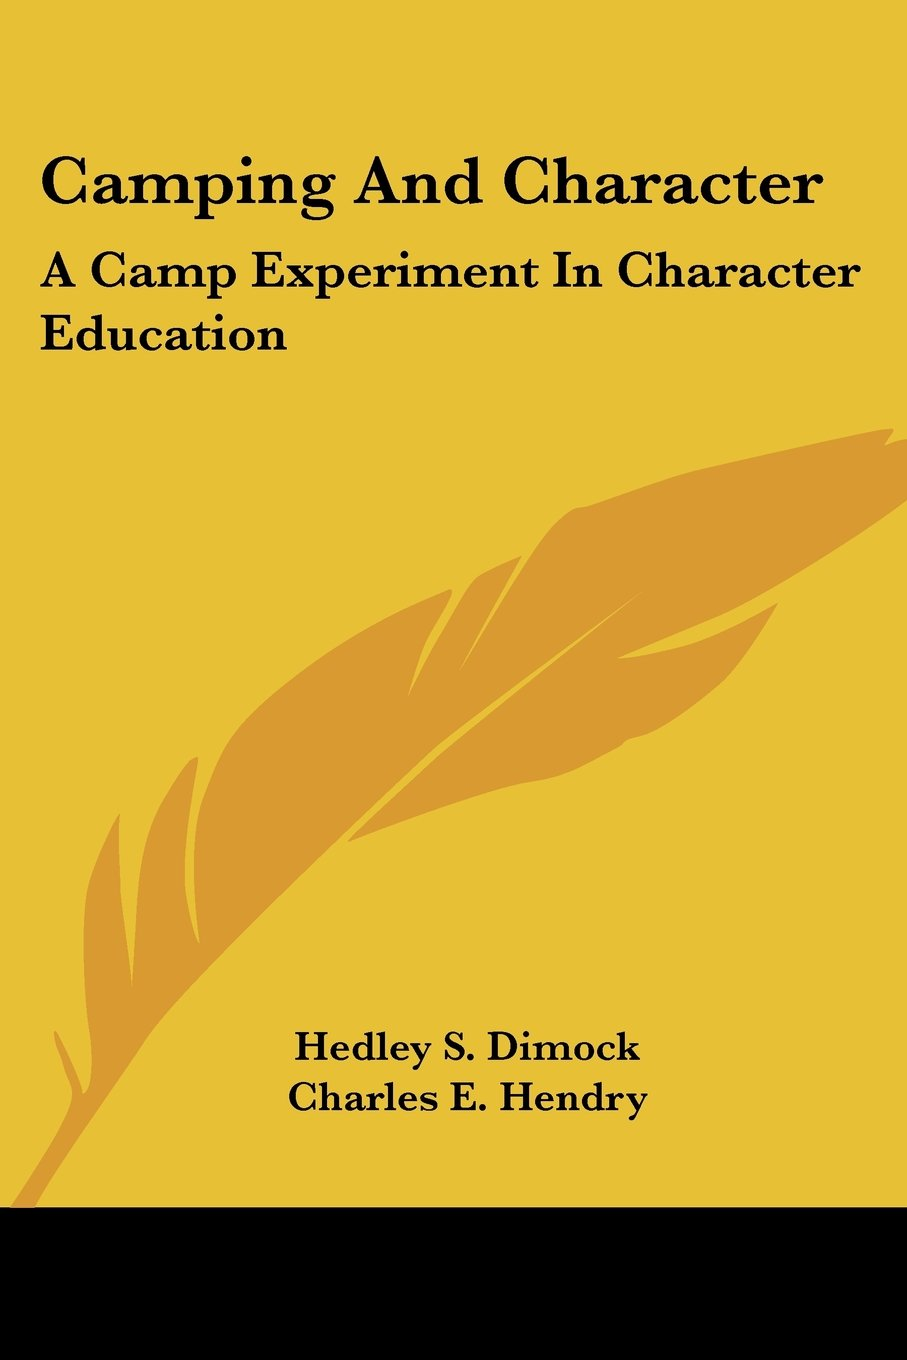 Download Camping And Character: A Camp Experiment In Character Education ebook